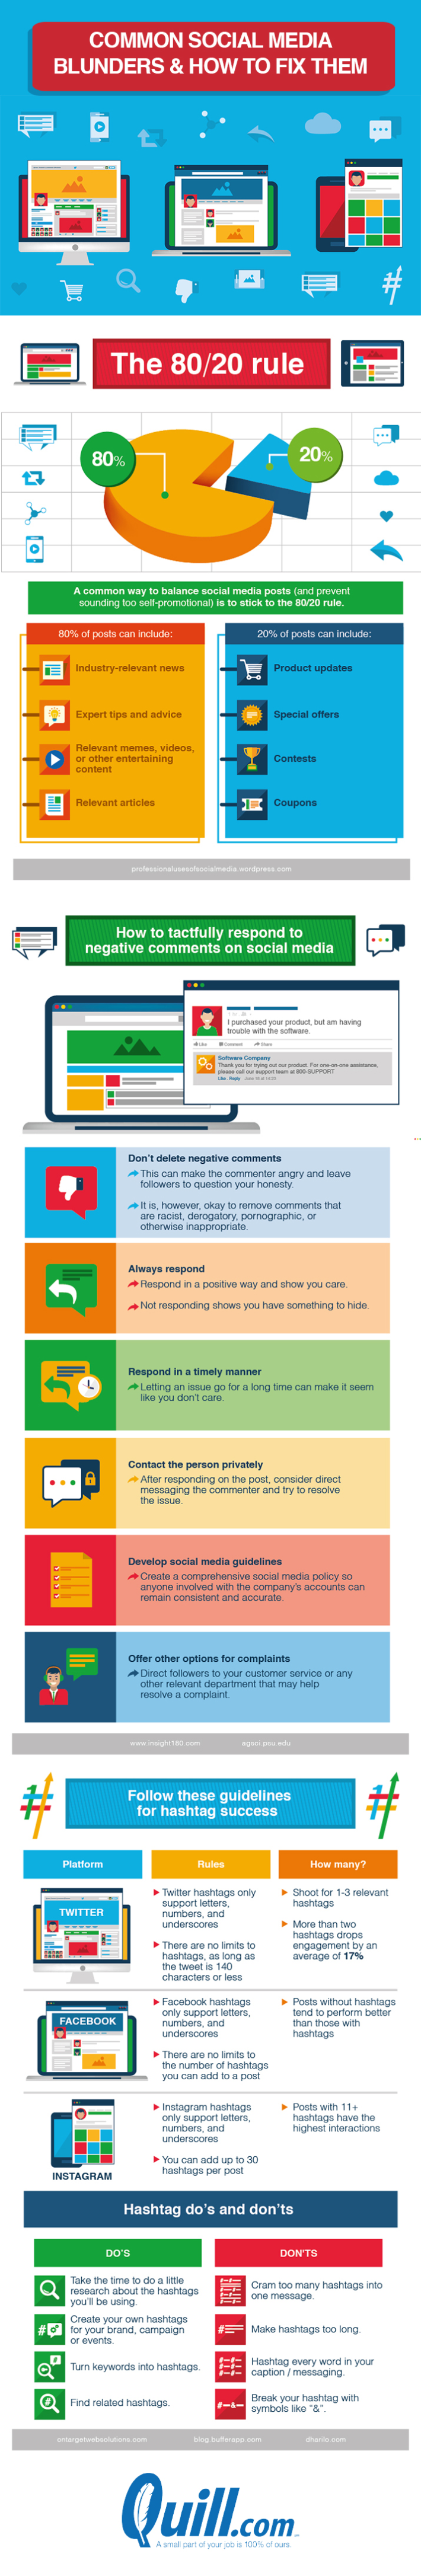 Avoid These Mistakes On Social Media - Infographic